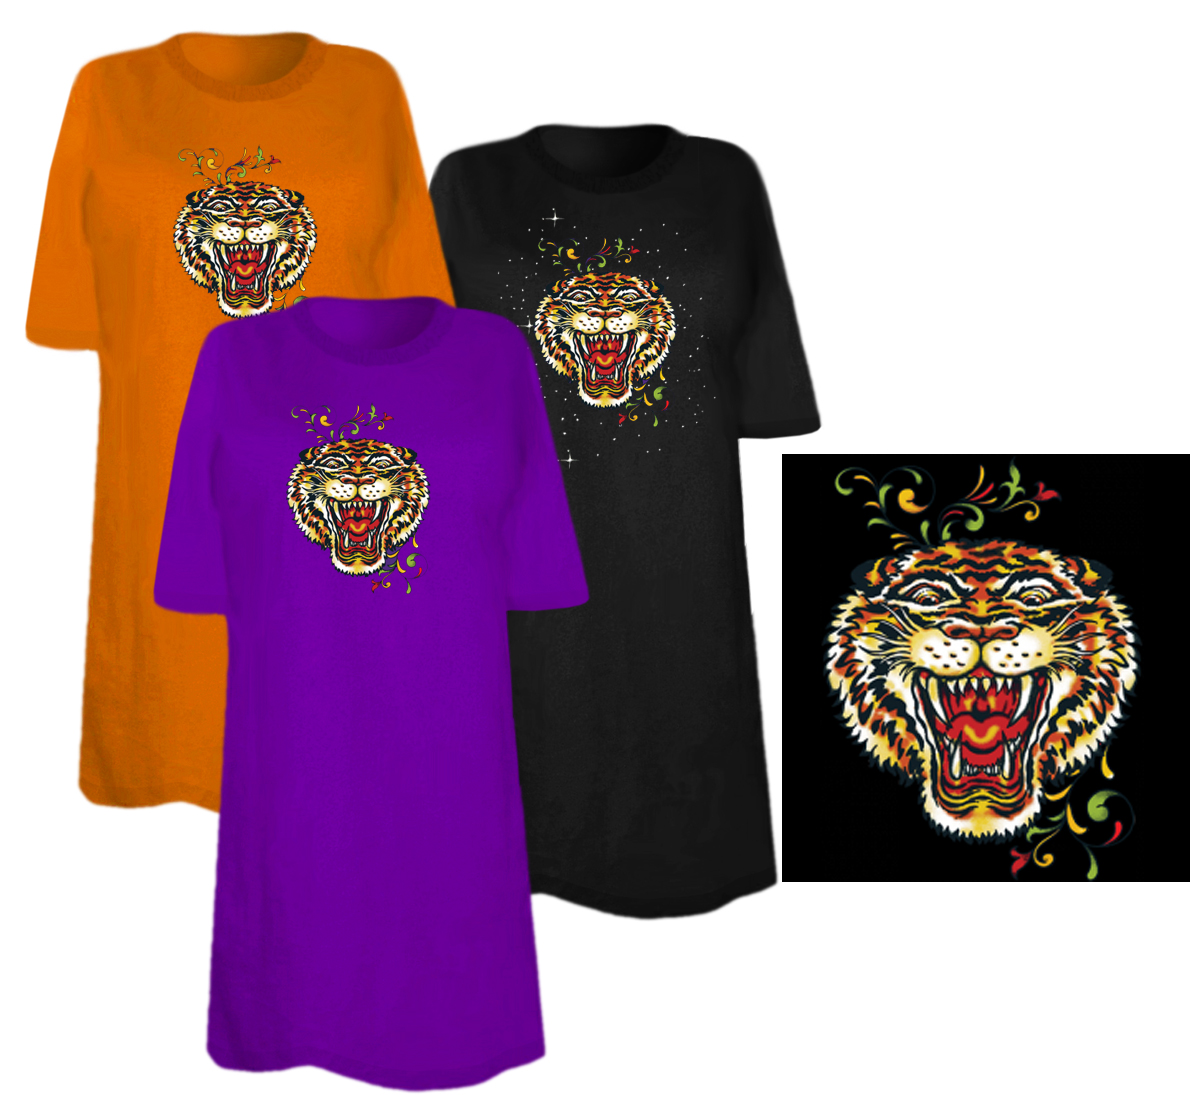 Sale Roaring Tiger Head Tattoo Plus Size Supersize T